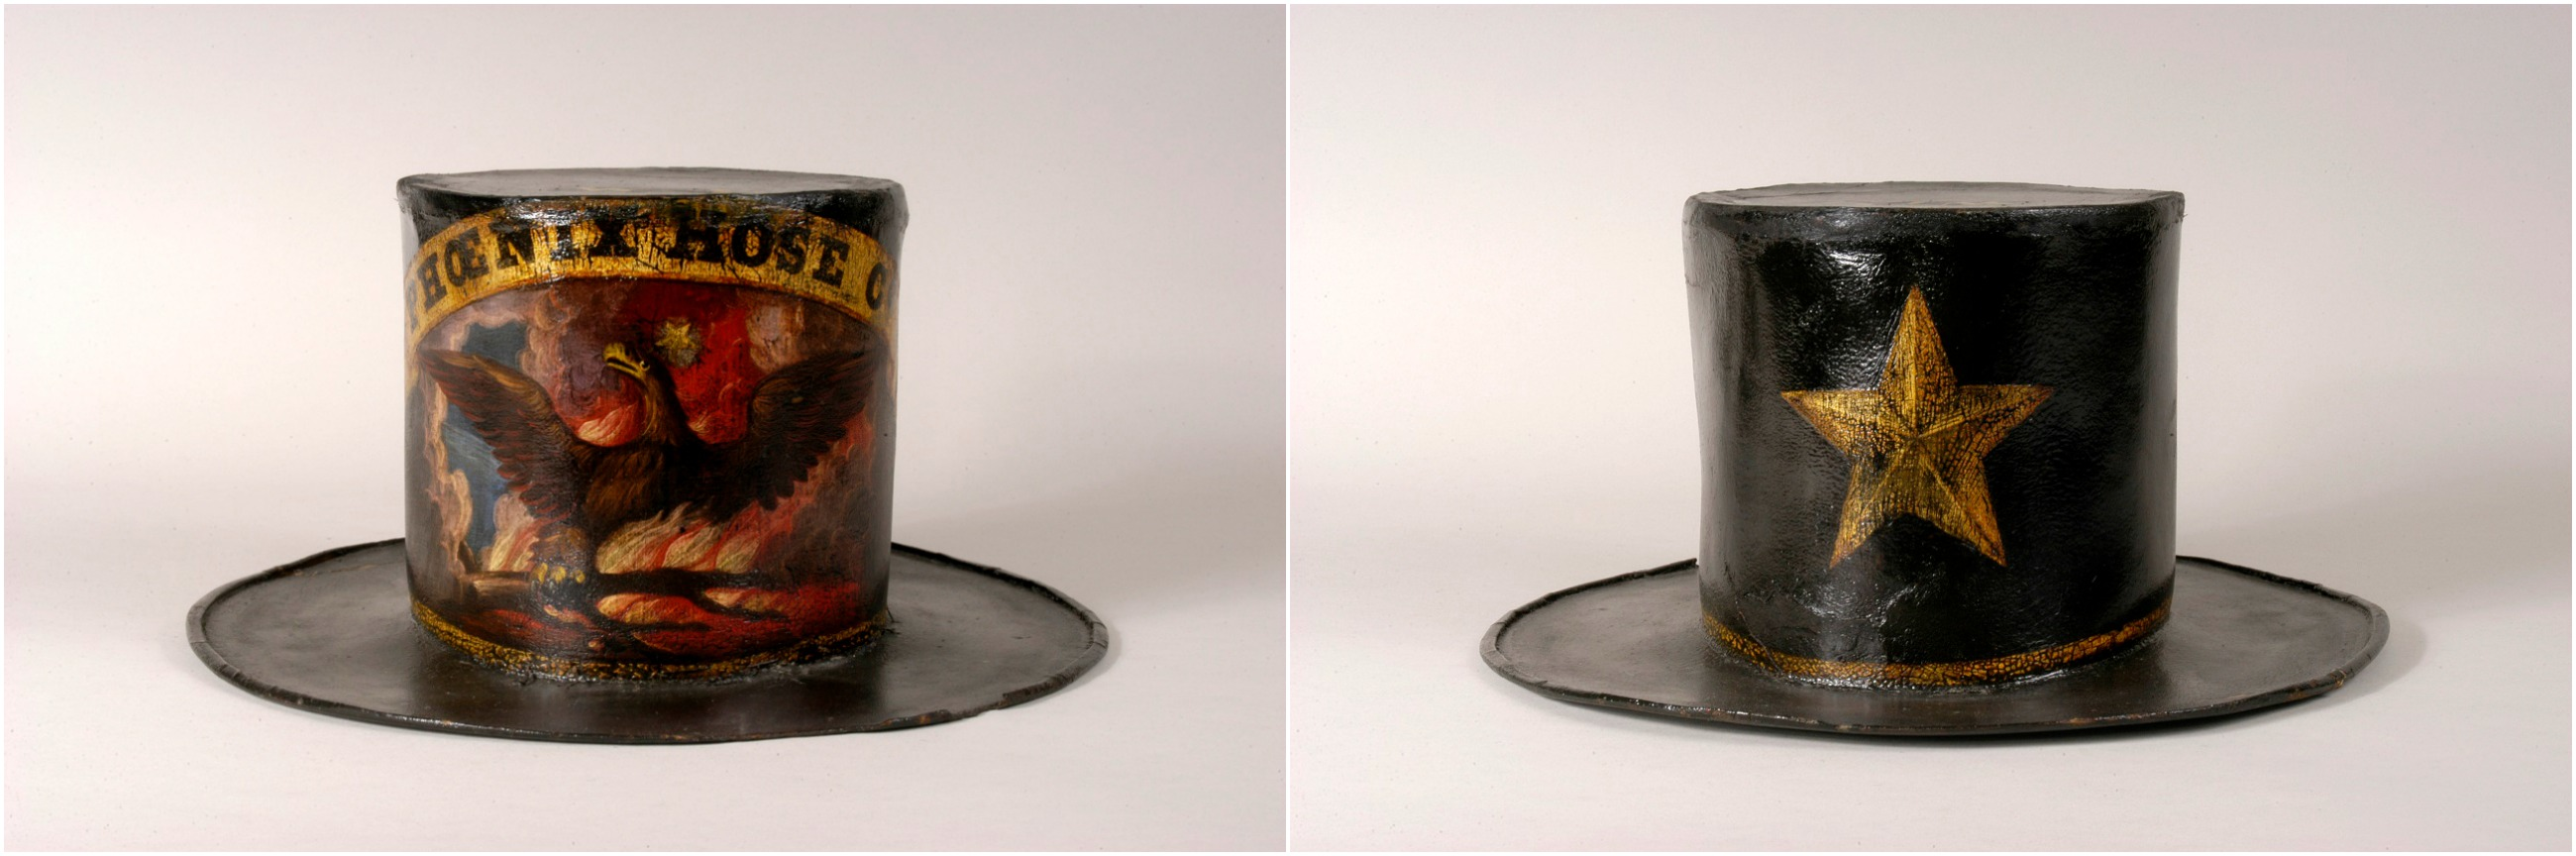 "Two hats, the shape of top hats. They're shiny--possibly the material, possibly what they were painted with. Both are dark with painted decorations, one shows a Phoenix rising from flames under the word ""Phoenix Hose Co."" The other a simple golden star."